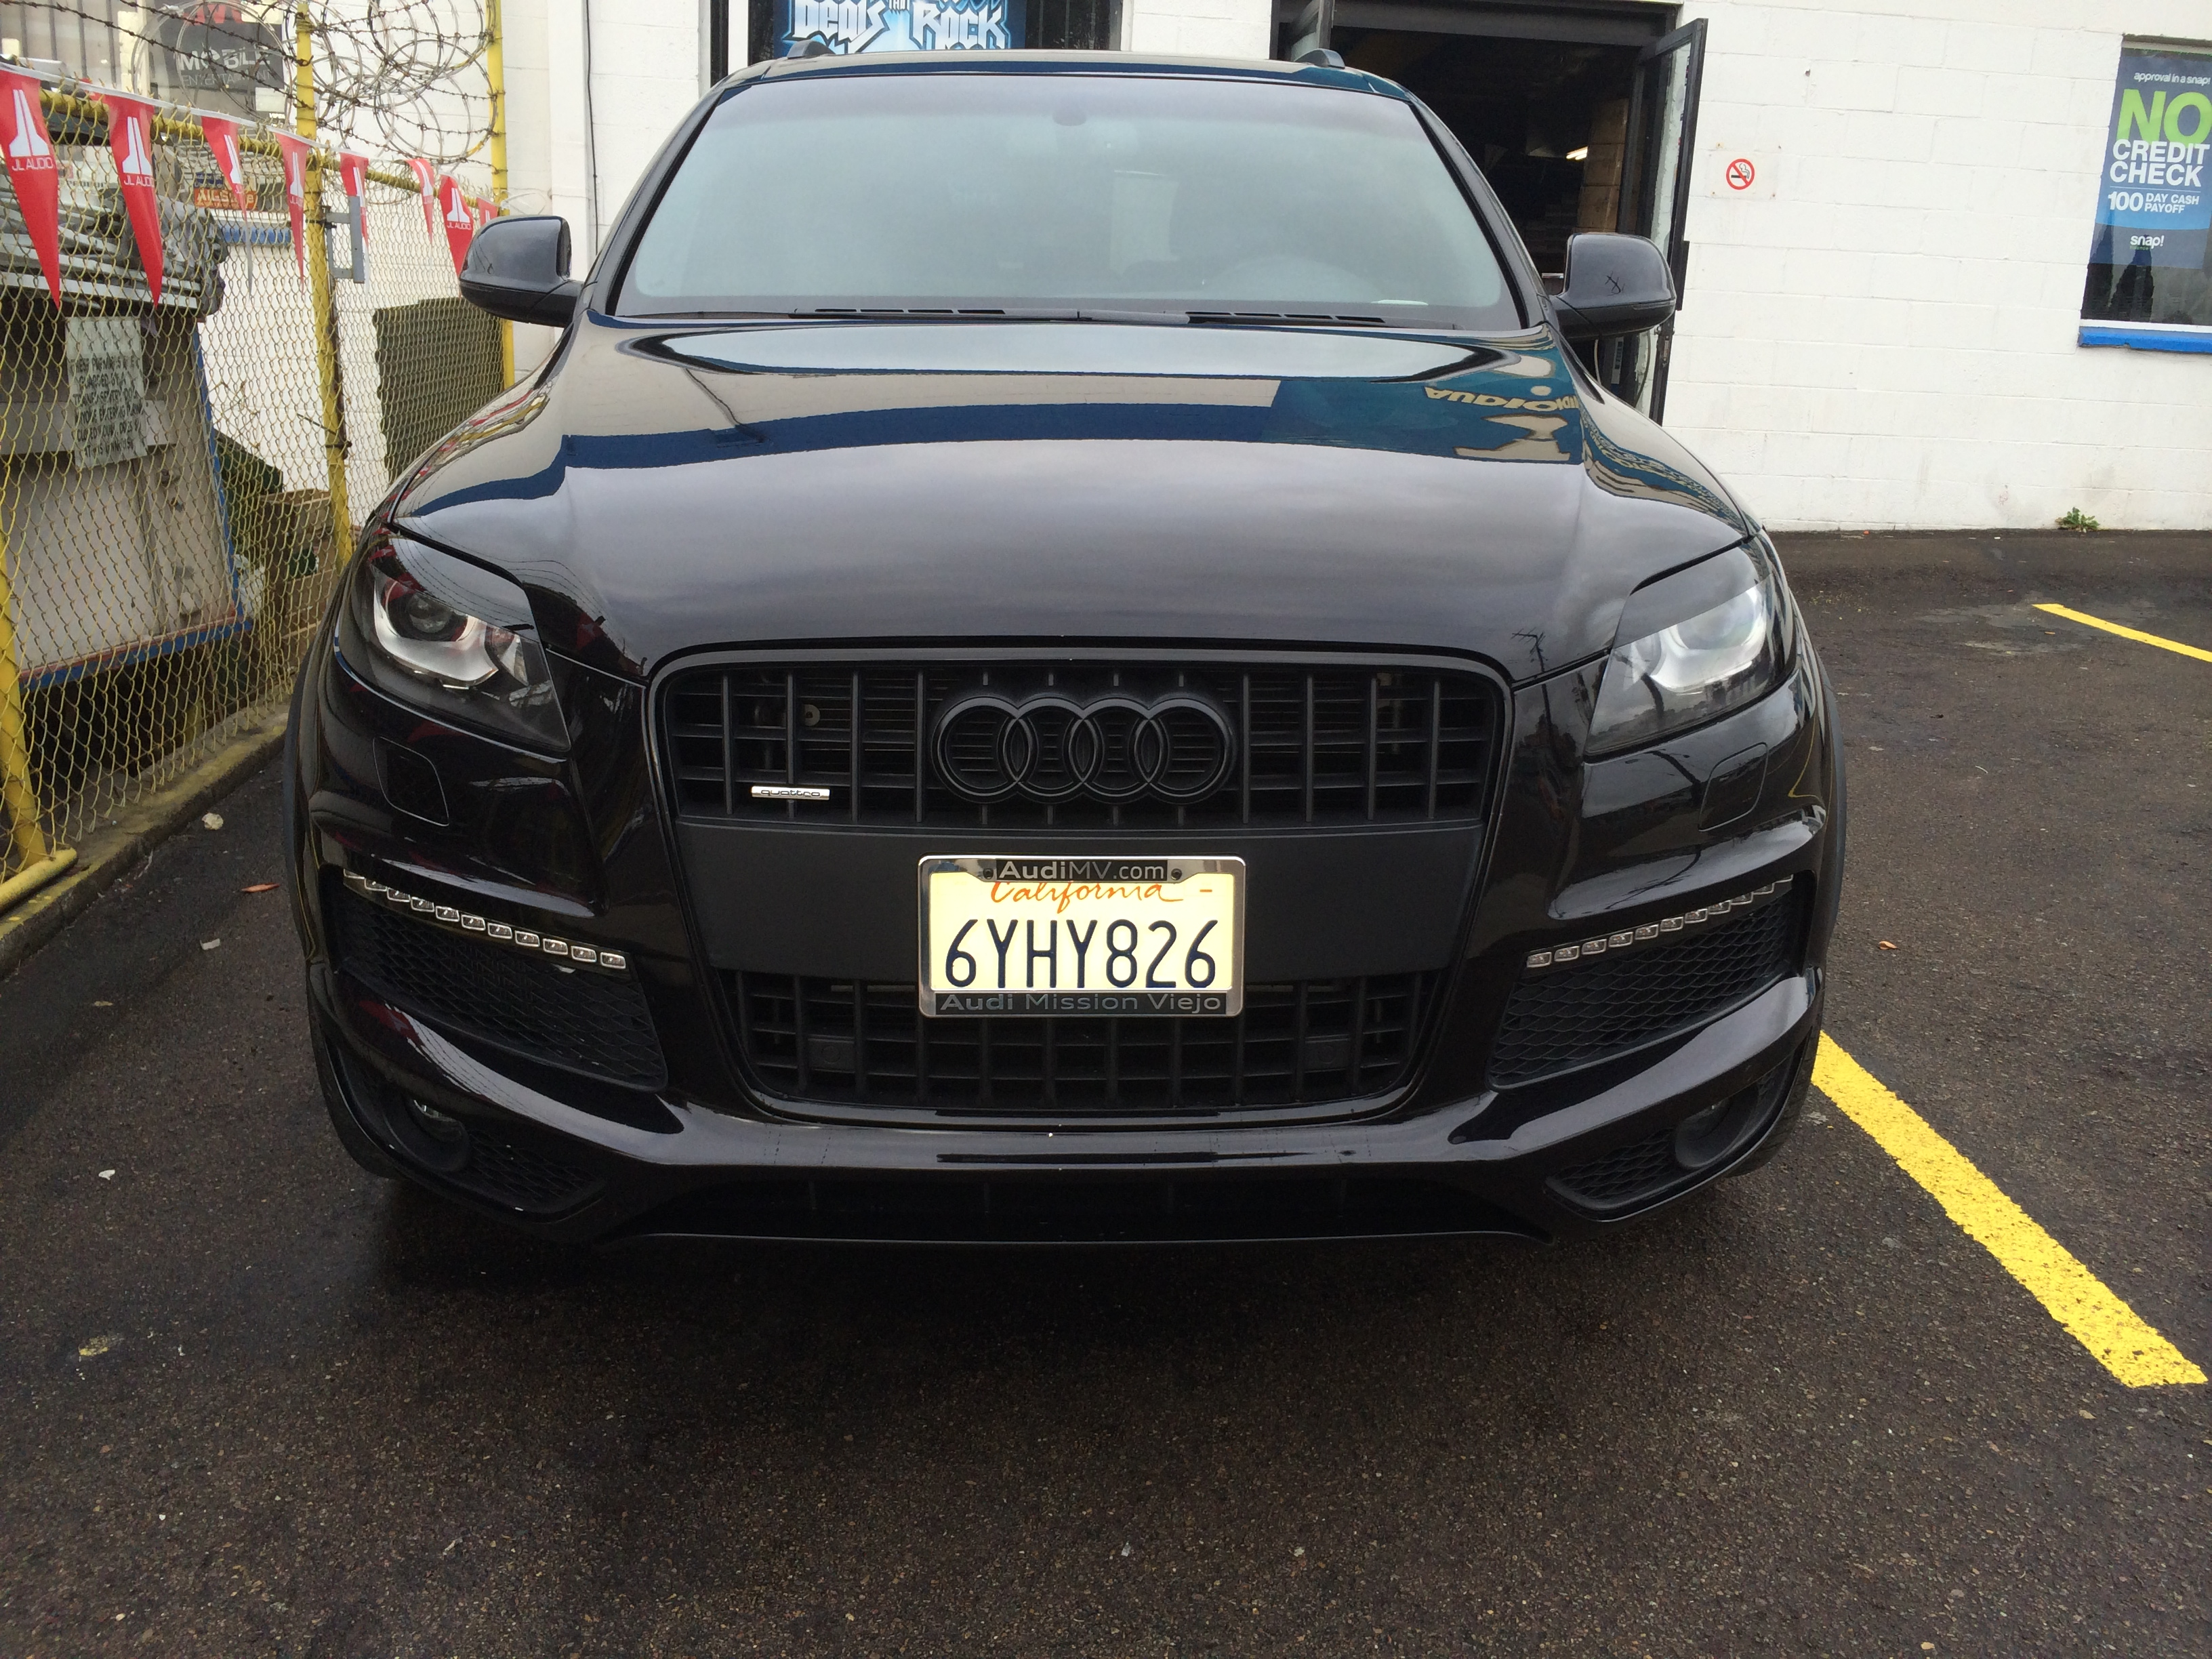 Joes Auto Repair >> Audi Q7 blacked out | Joe's Stereo